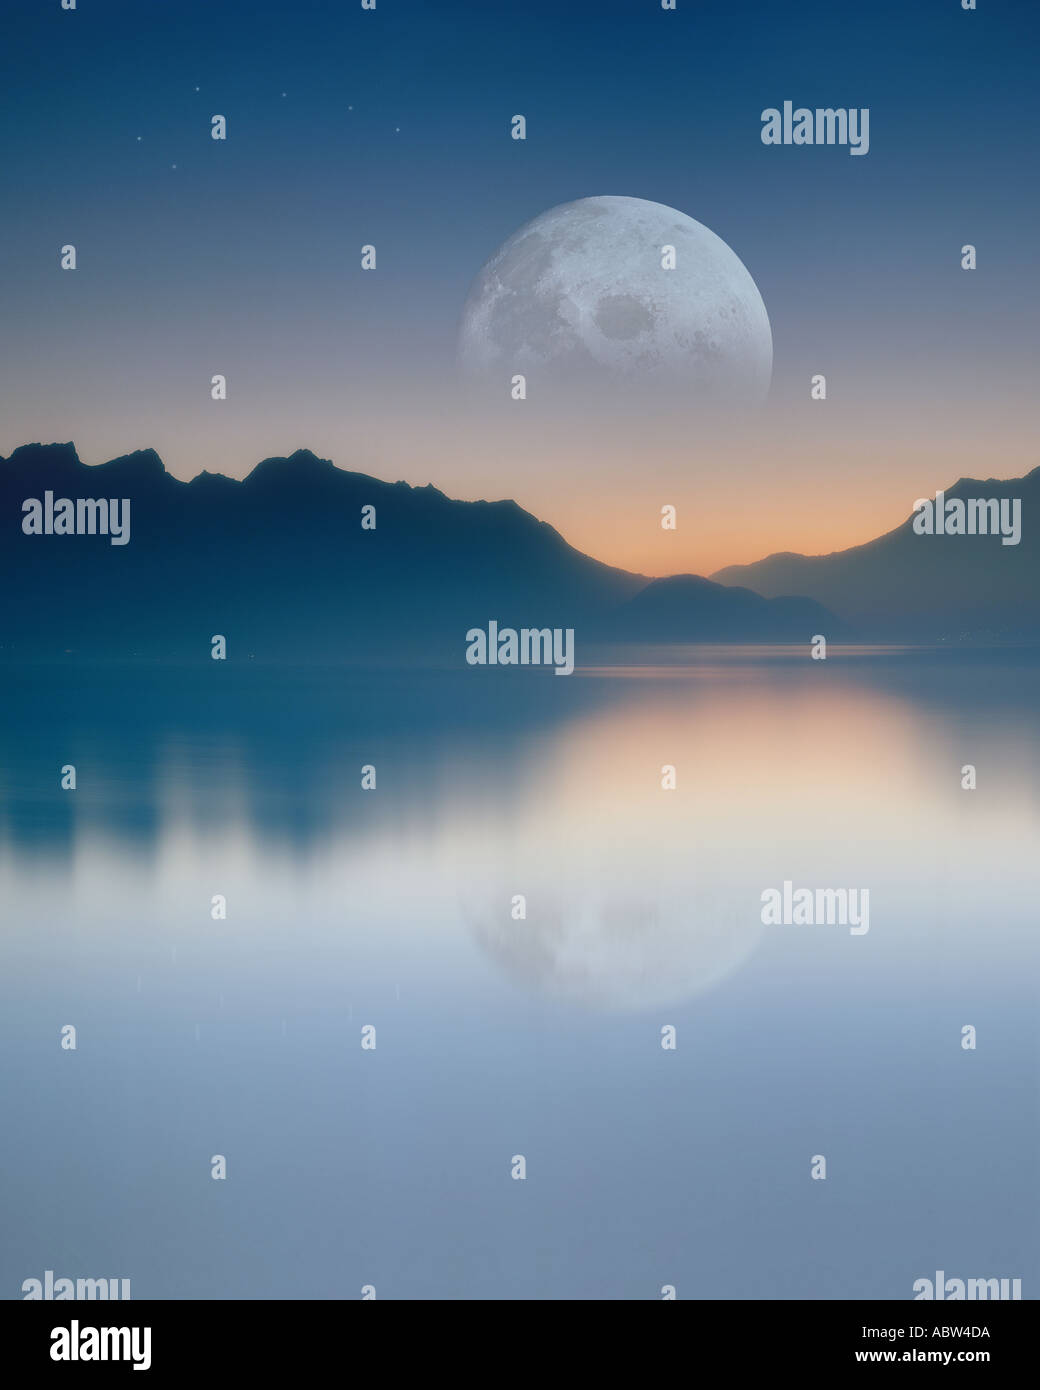 CH - VAUD: Moon over Lake Geneva - Stock Image